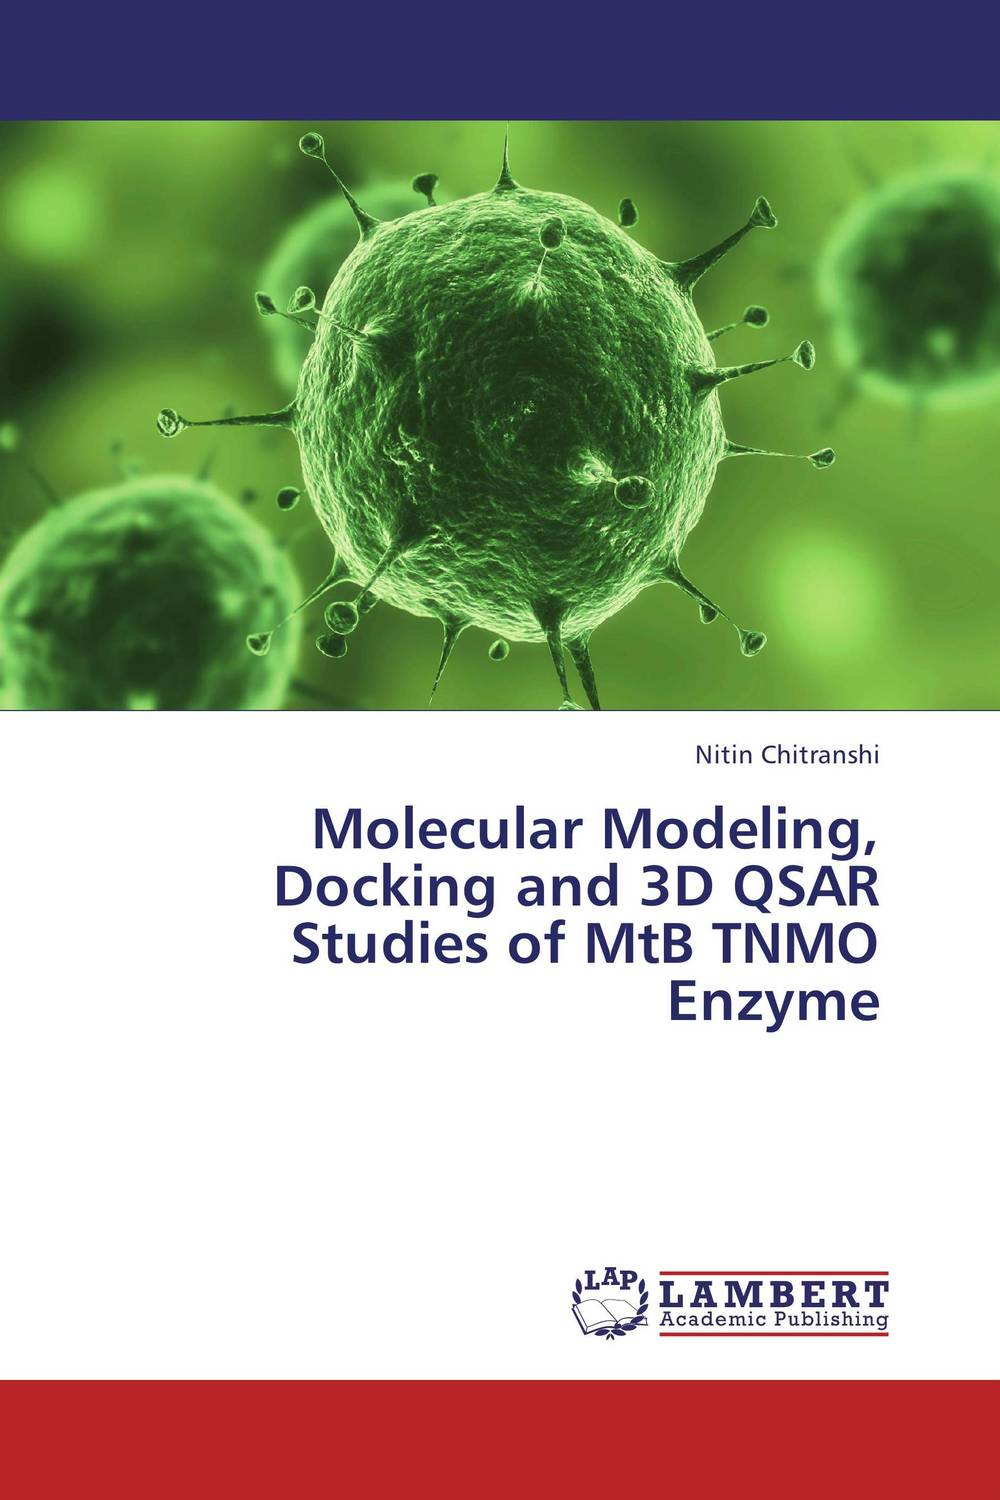 Molecular Modeling, Docking and 3D QSAR Studies of MtB TNMO Enzyme purnima sareen sundeep kumar and rakesh singh molecular and pathological characterization of slow rusting in wheat